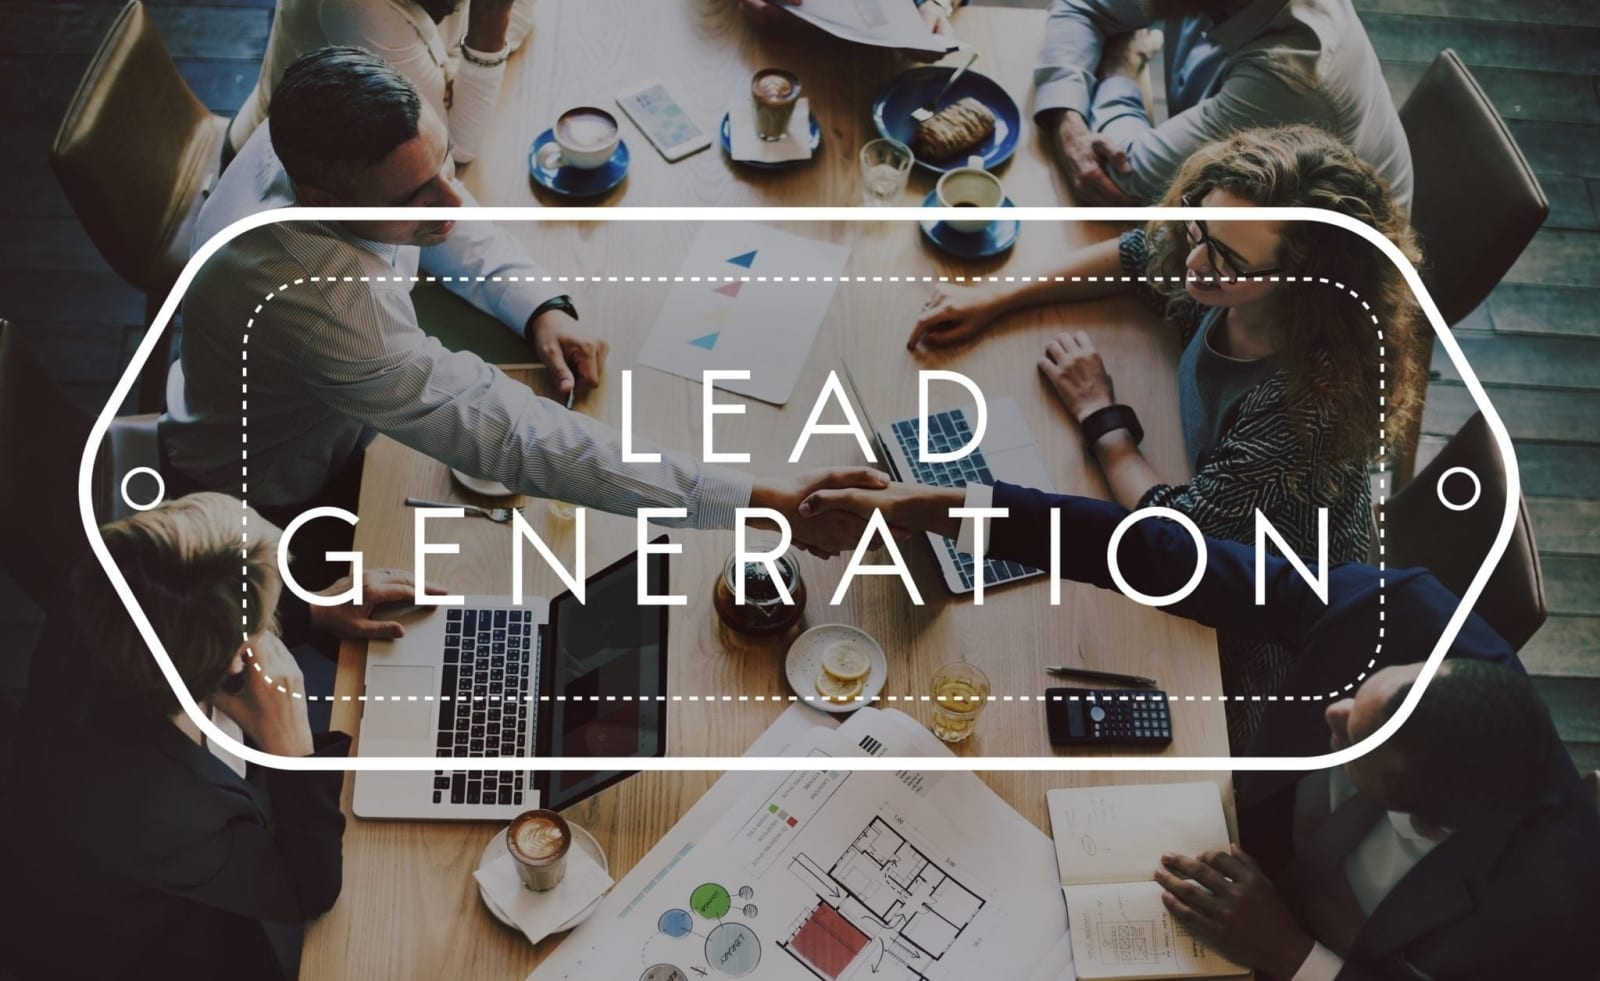 """Image of professionals seated around a table working with words """"Lead Generation"""" imposed over the image"""